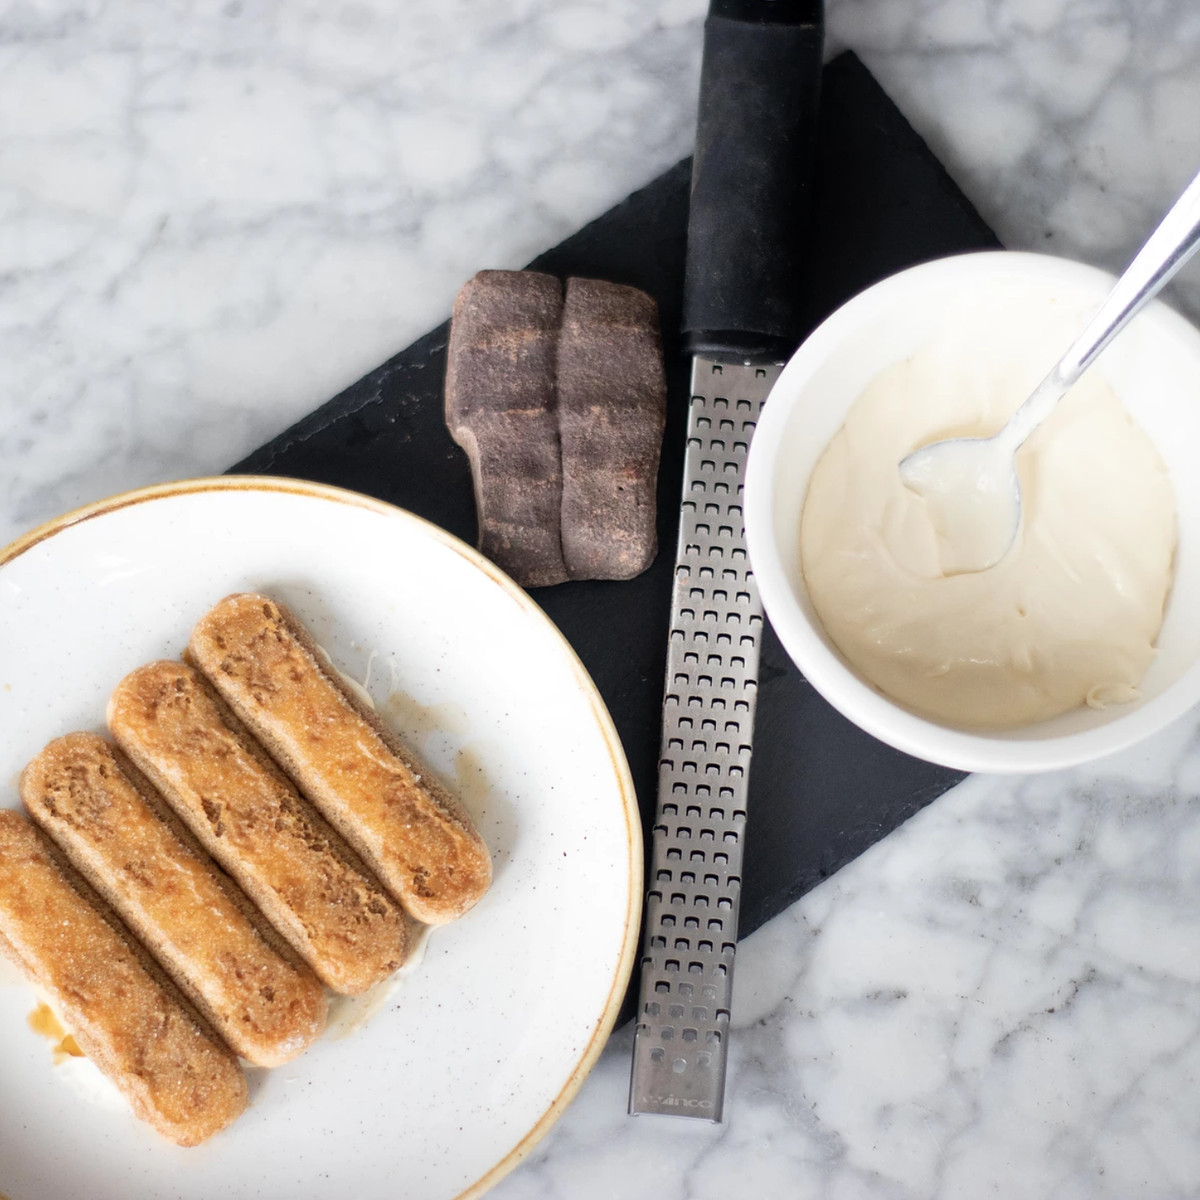 The components for The Connection's tableside tiramisu